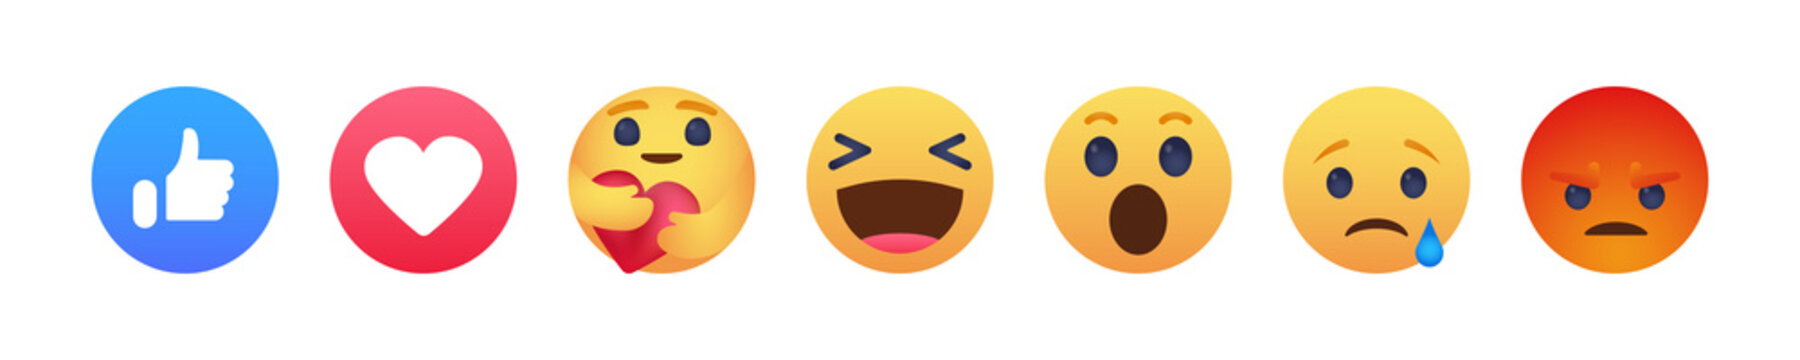 Facebook emoticon buttons. Collection of Emoji Reactions for Social Network. Kyiv, Ukraine - April 18, 2020